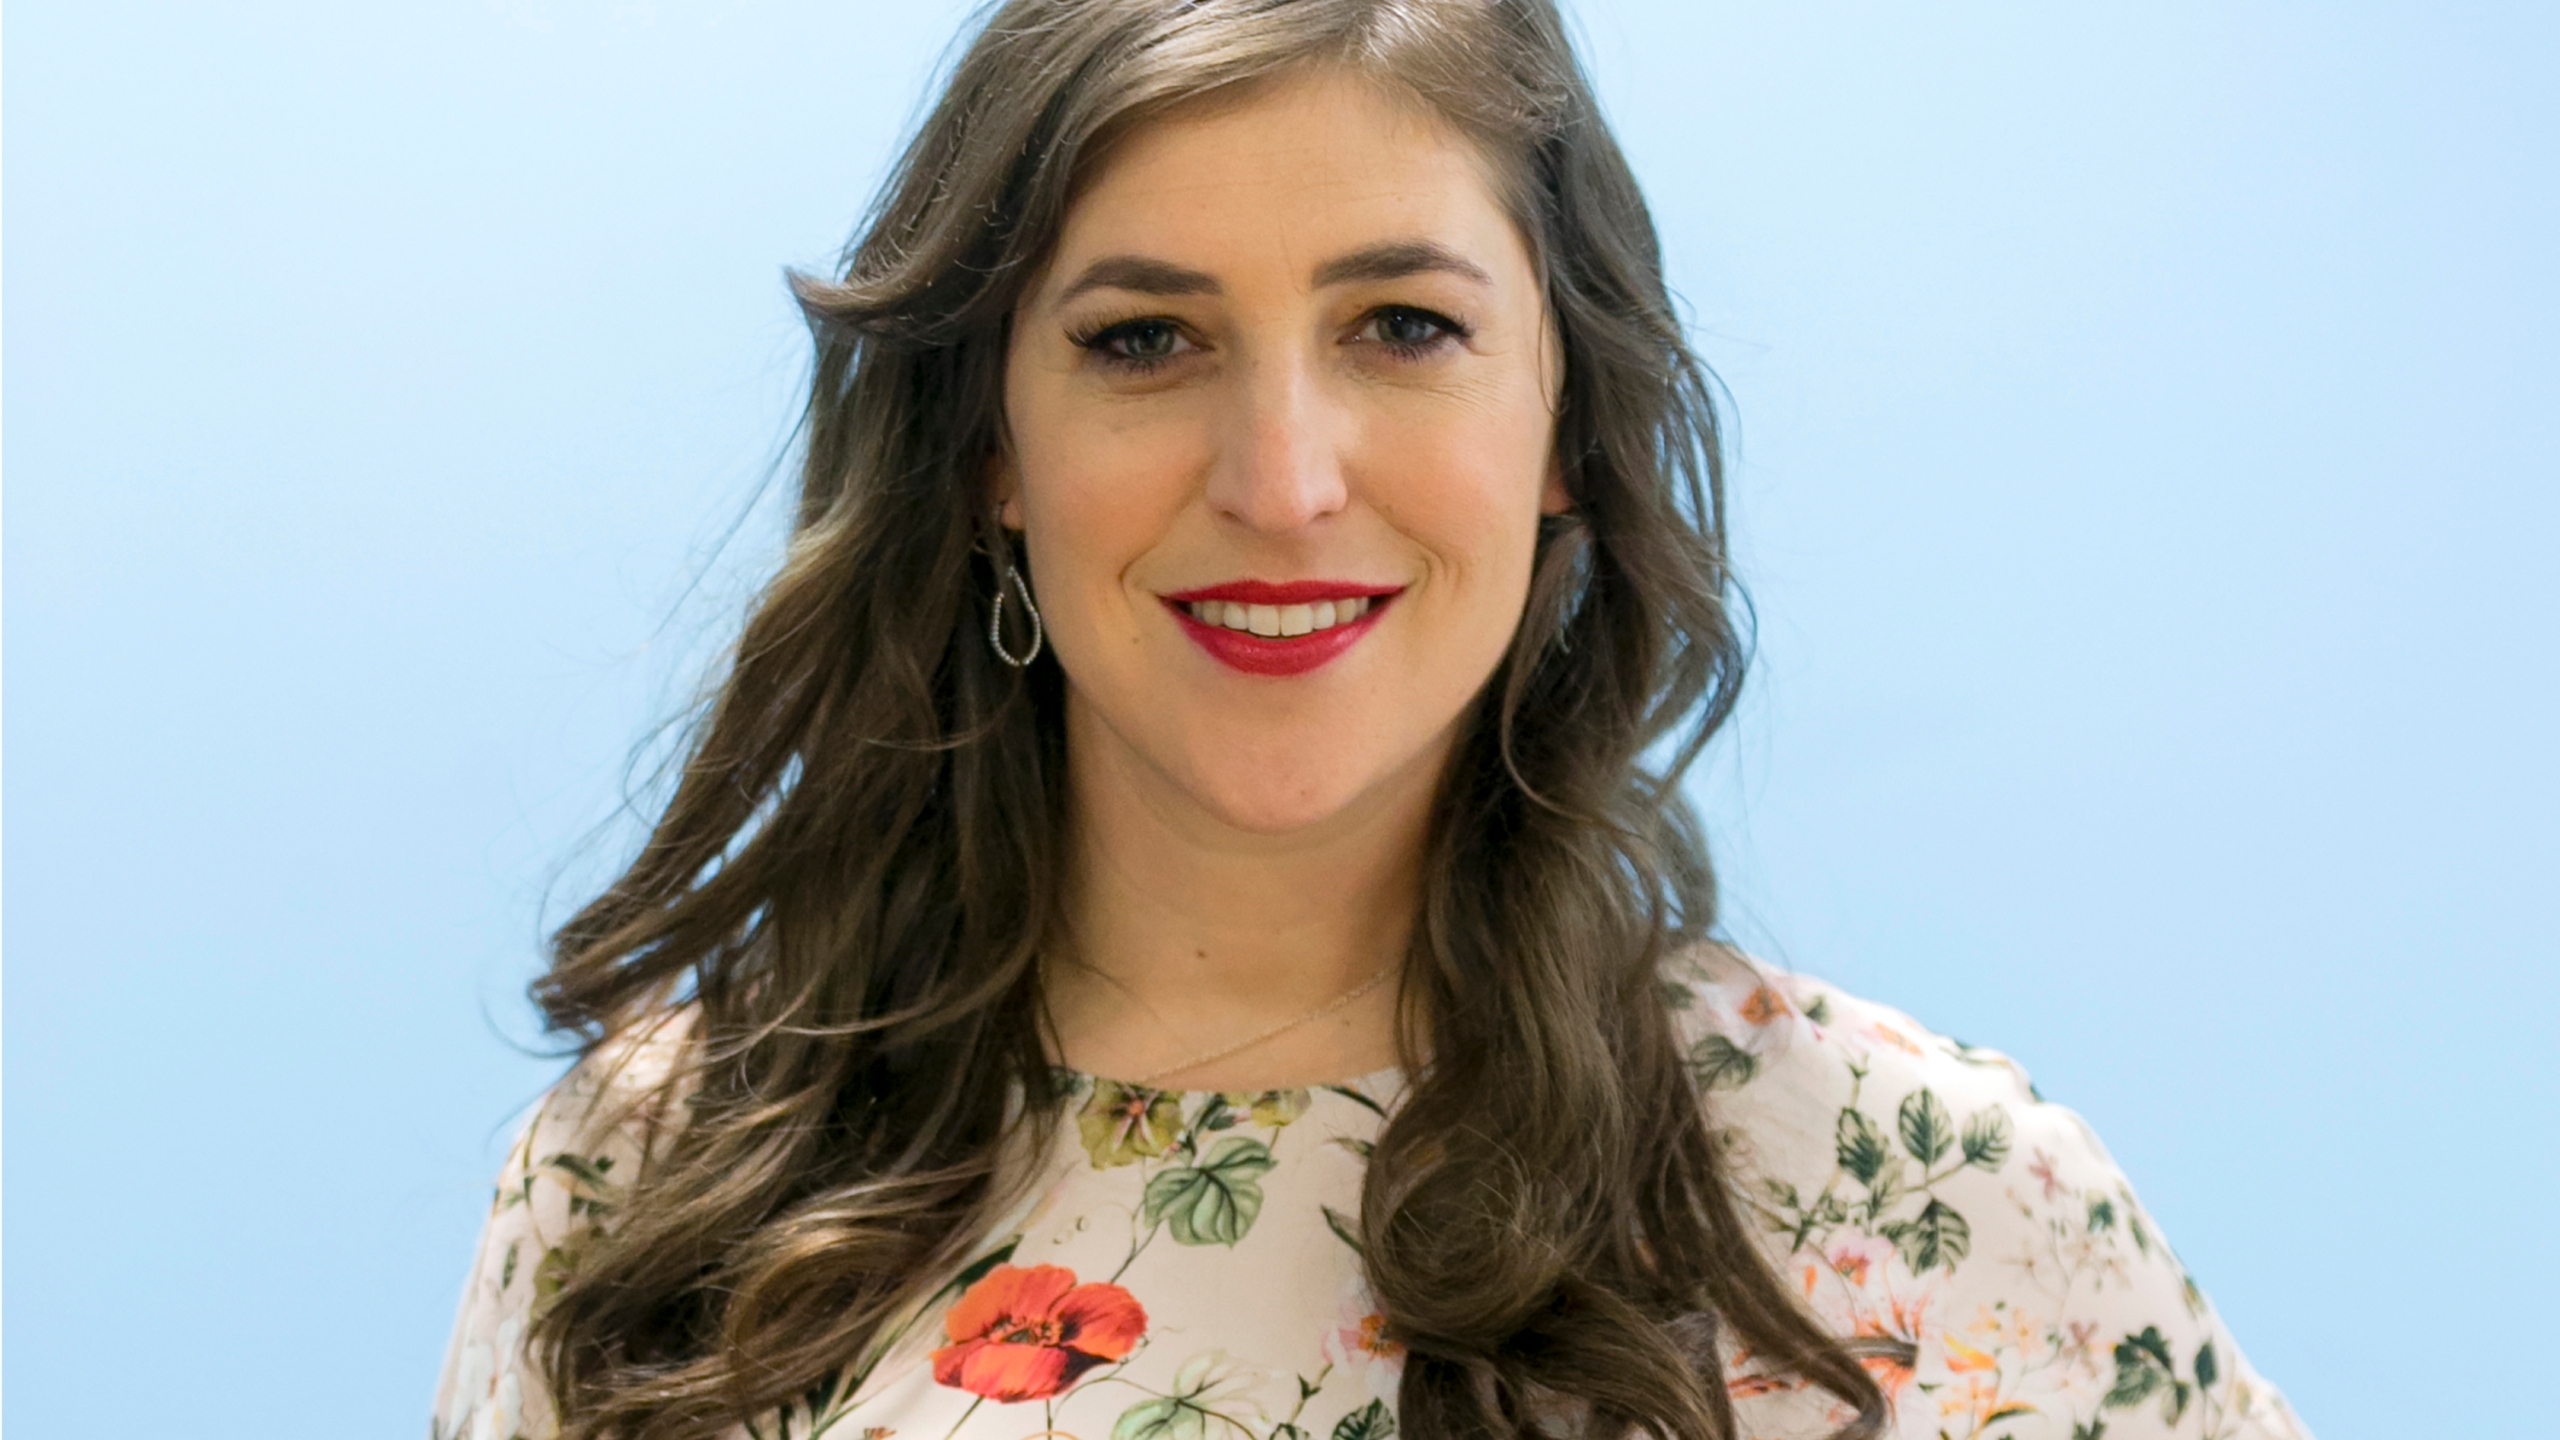 """In this May. 23, 2017, file photo, Mayim Bialik poses for a photo in Los Angeles. """"Jeopardy!"""" is back to guest hosts after the resignation of new host Mike Richards, and actor Mayim Bialik will return as the first. (AP Photo/Damian Dovarganes)"""